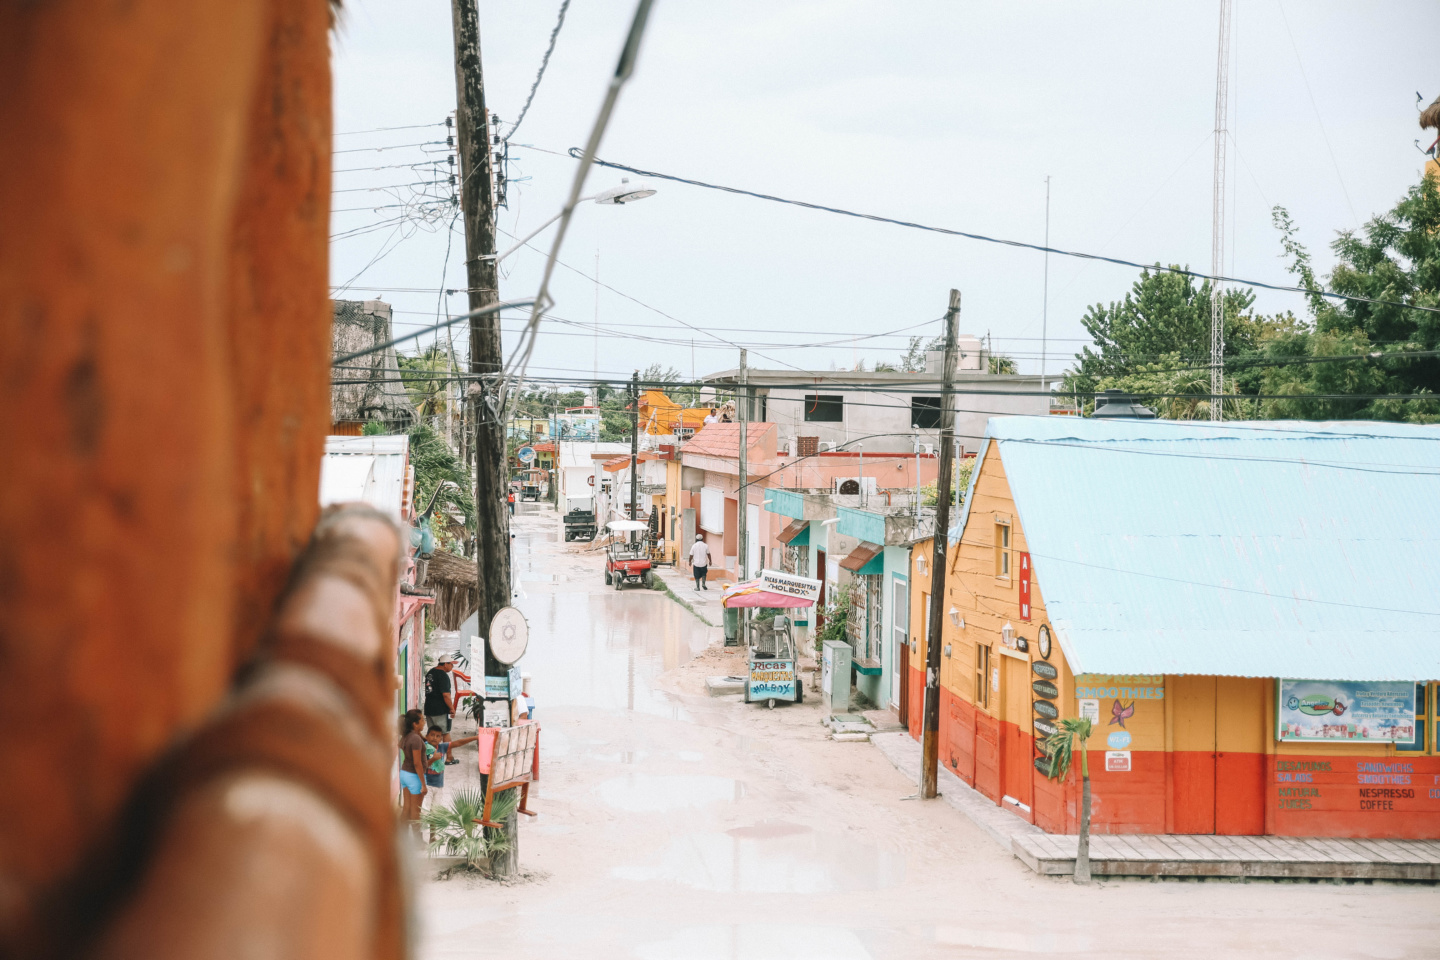 Visiter Isla Holbox Mexique - Blondie baby blog mode et voyages